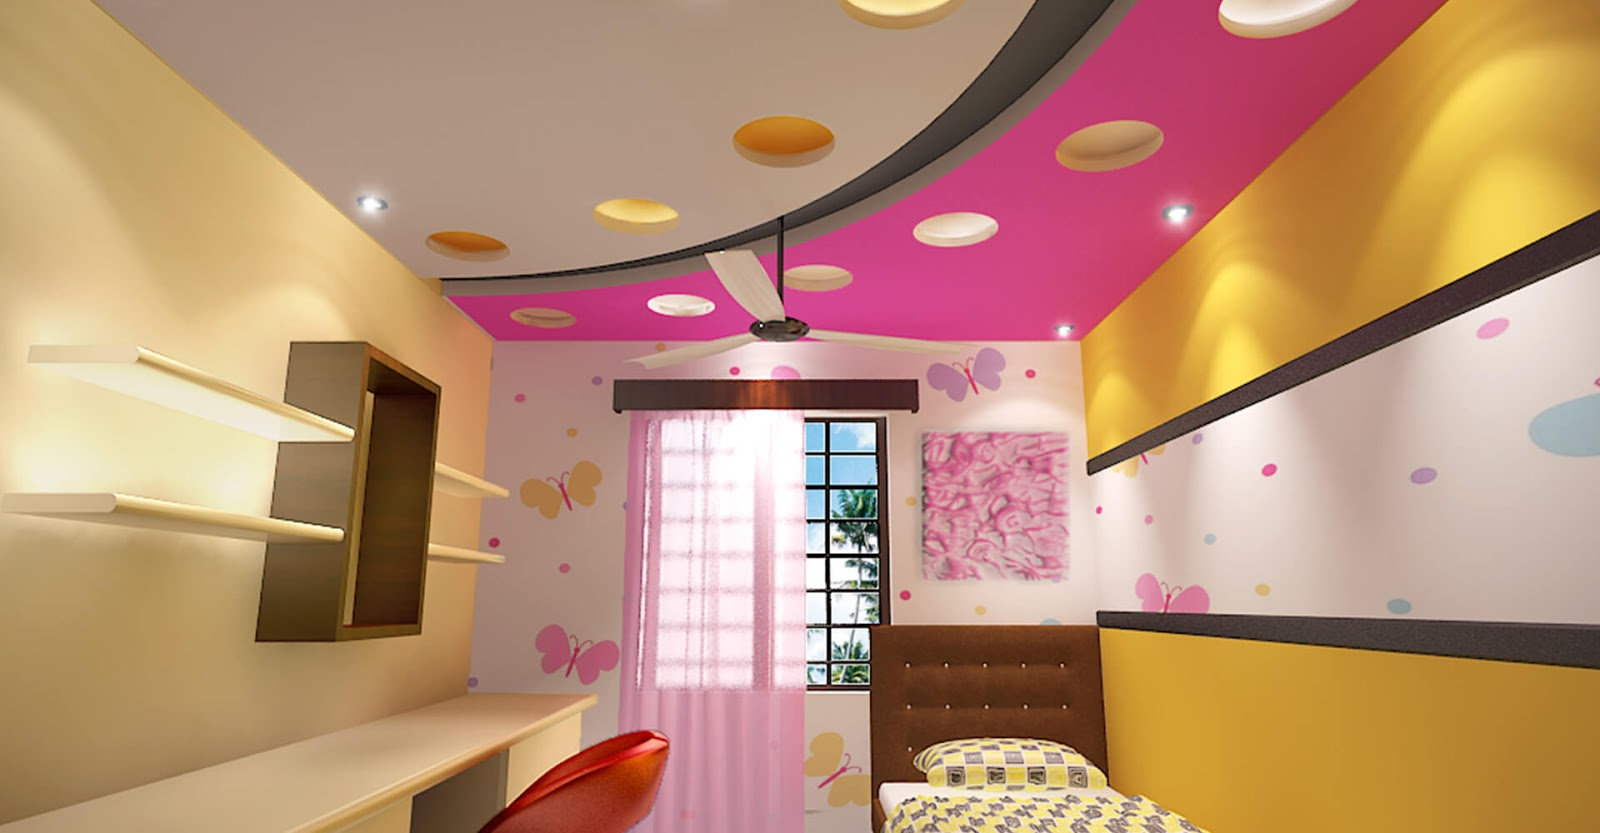 Top 25 false ceiling design options for kids rooms 2018 for Lighting for kids room